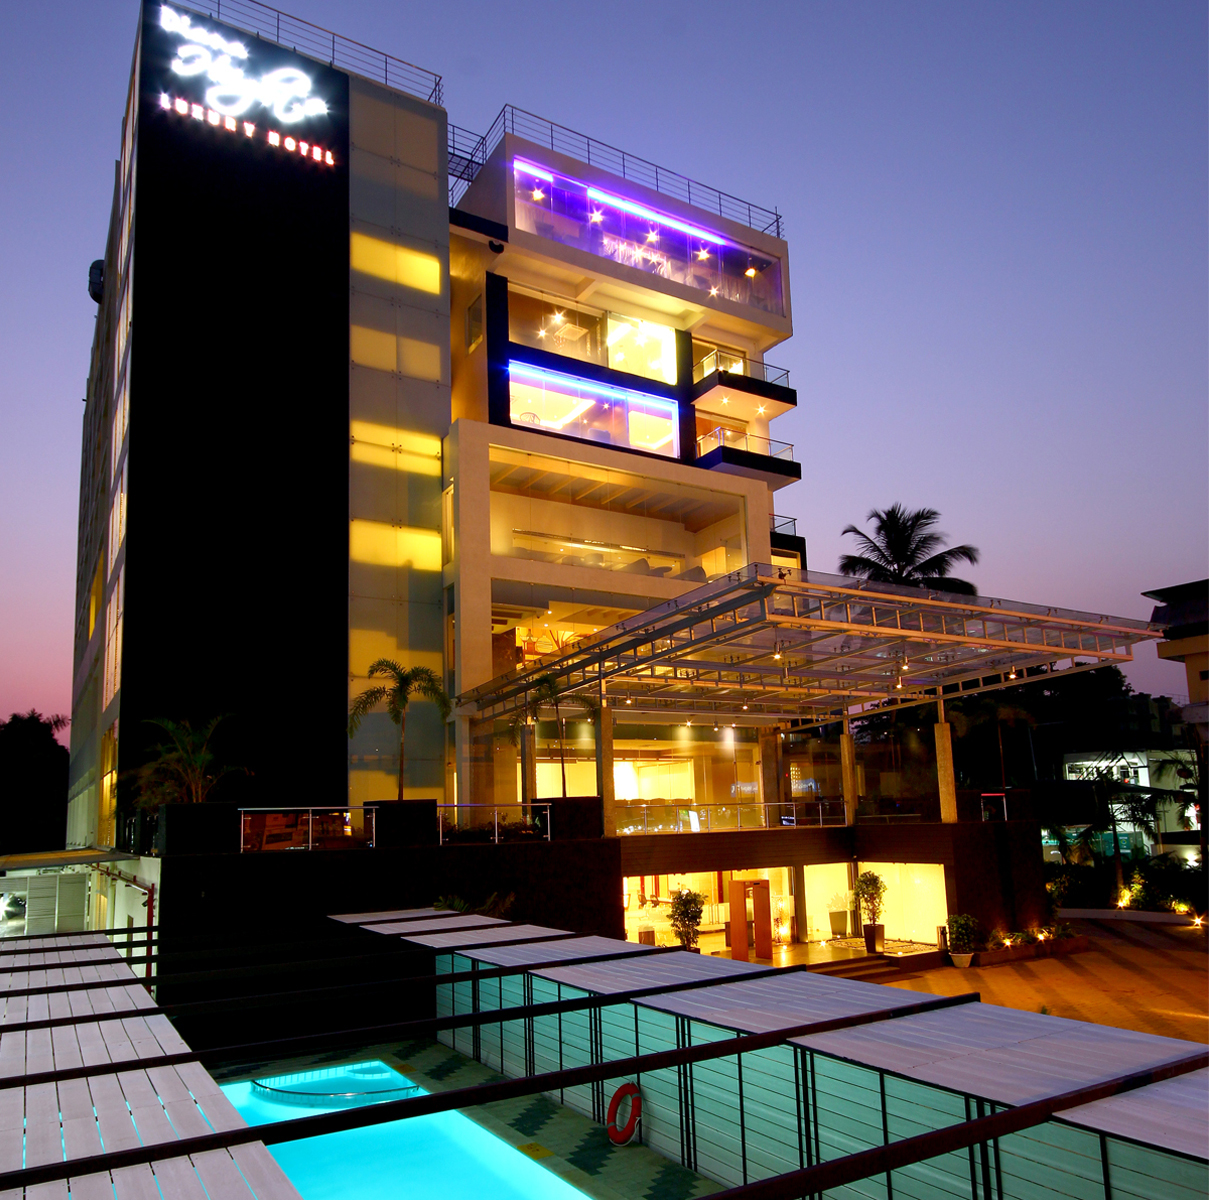 Country holidays Inn and suites Kerala